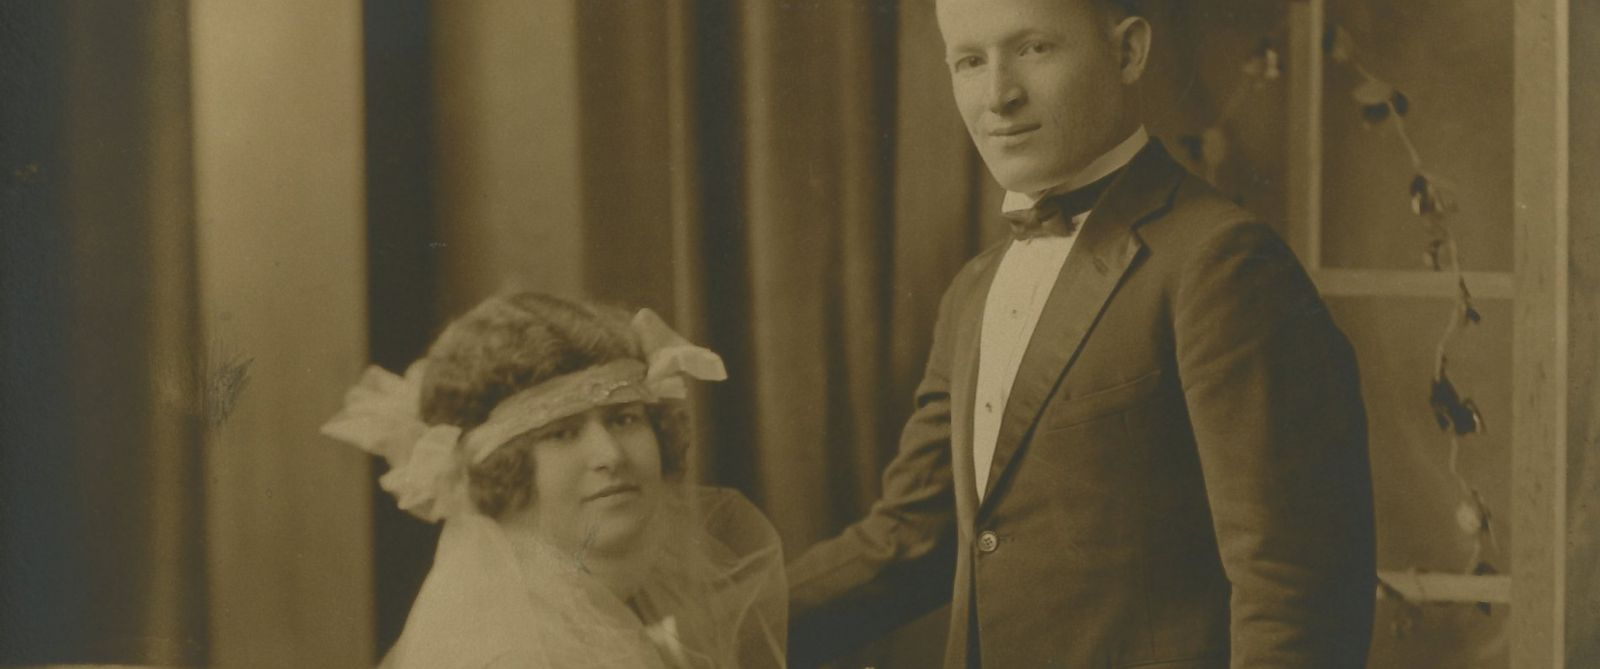 PHOTO: August 24, 1924: Morris & Dorothy Paschen (Parents of Bernalee) were married at The Pfister hotel.